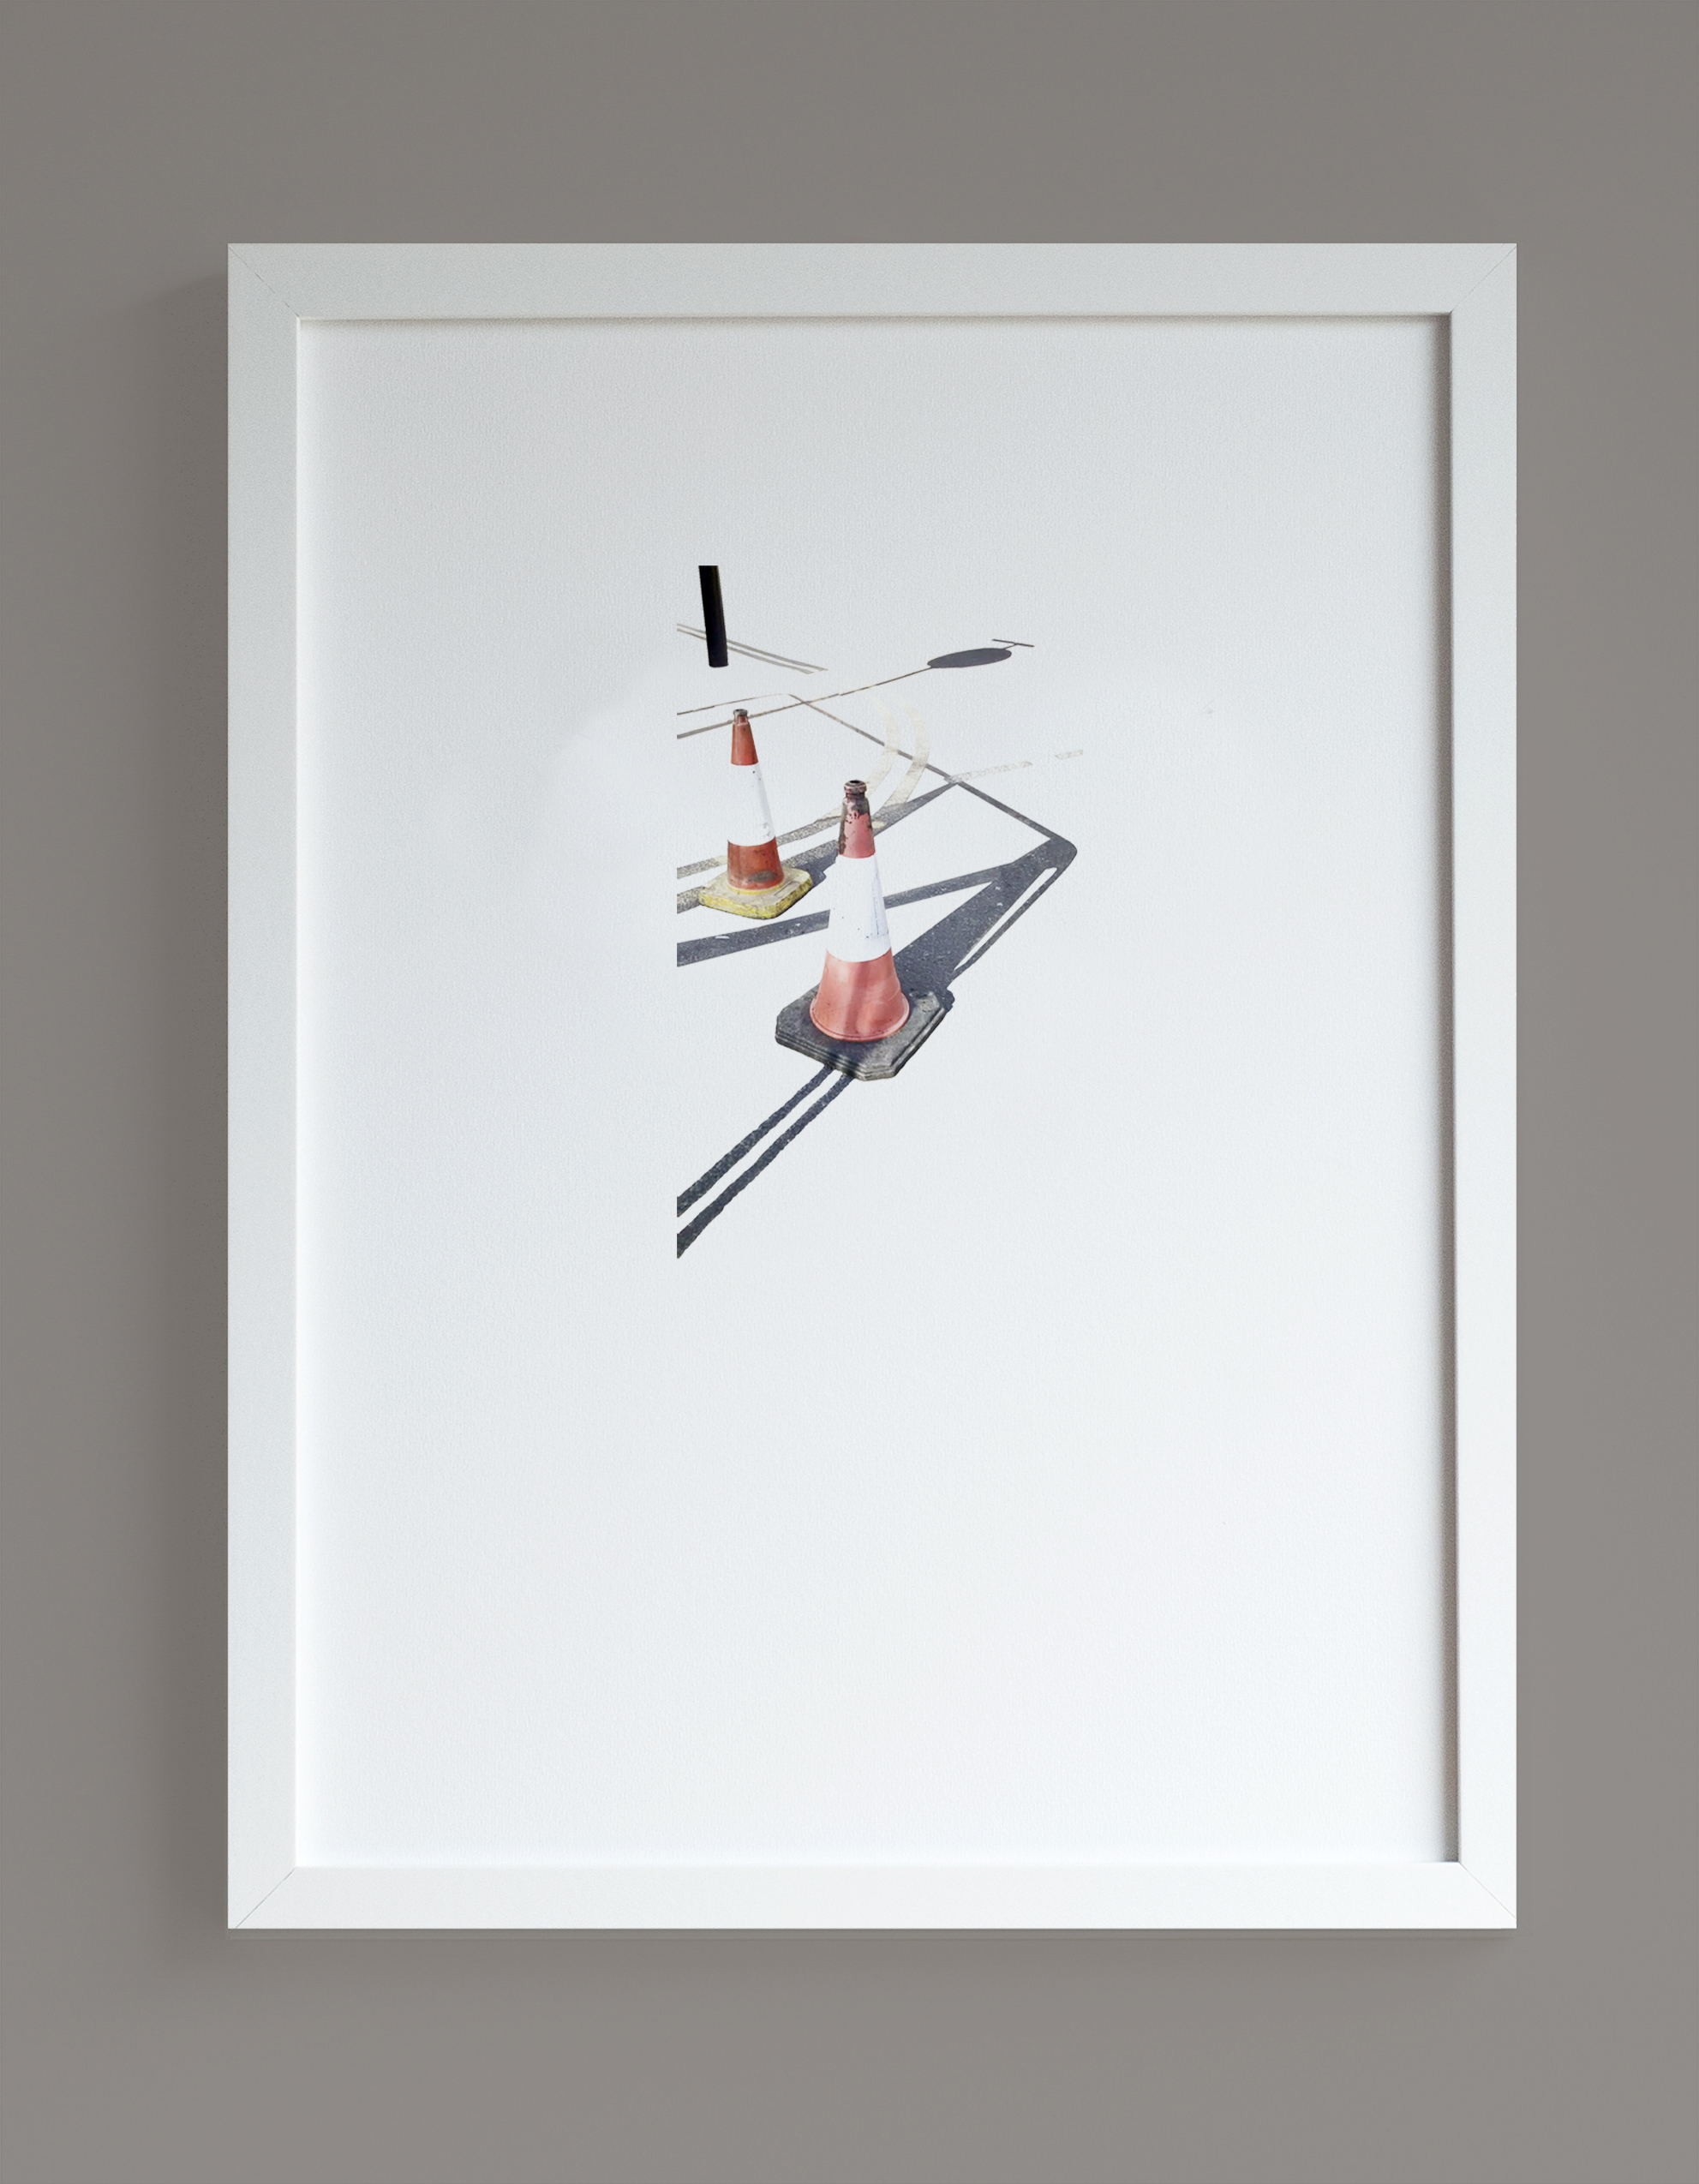 Image of framed print featuring traffic cones photographic print